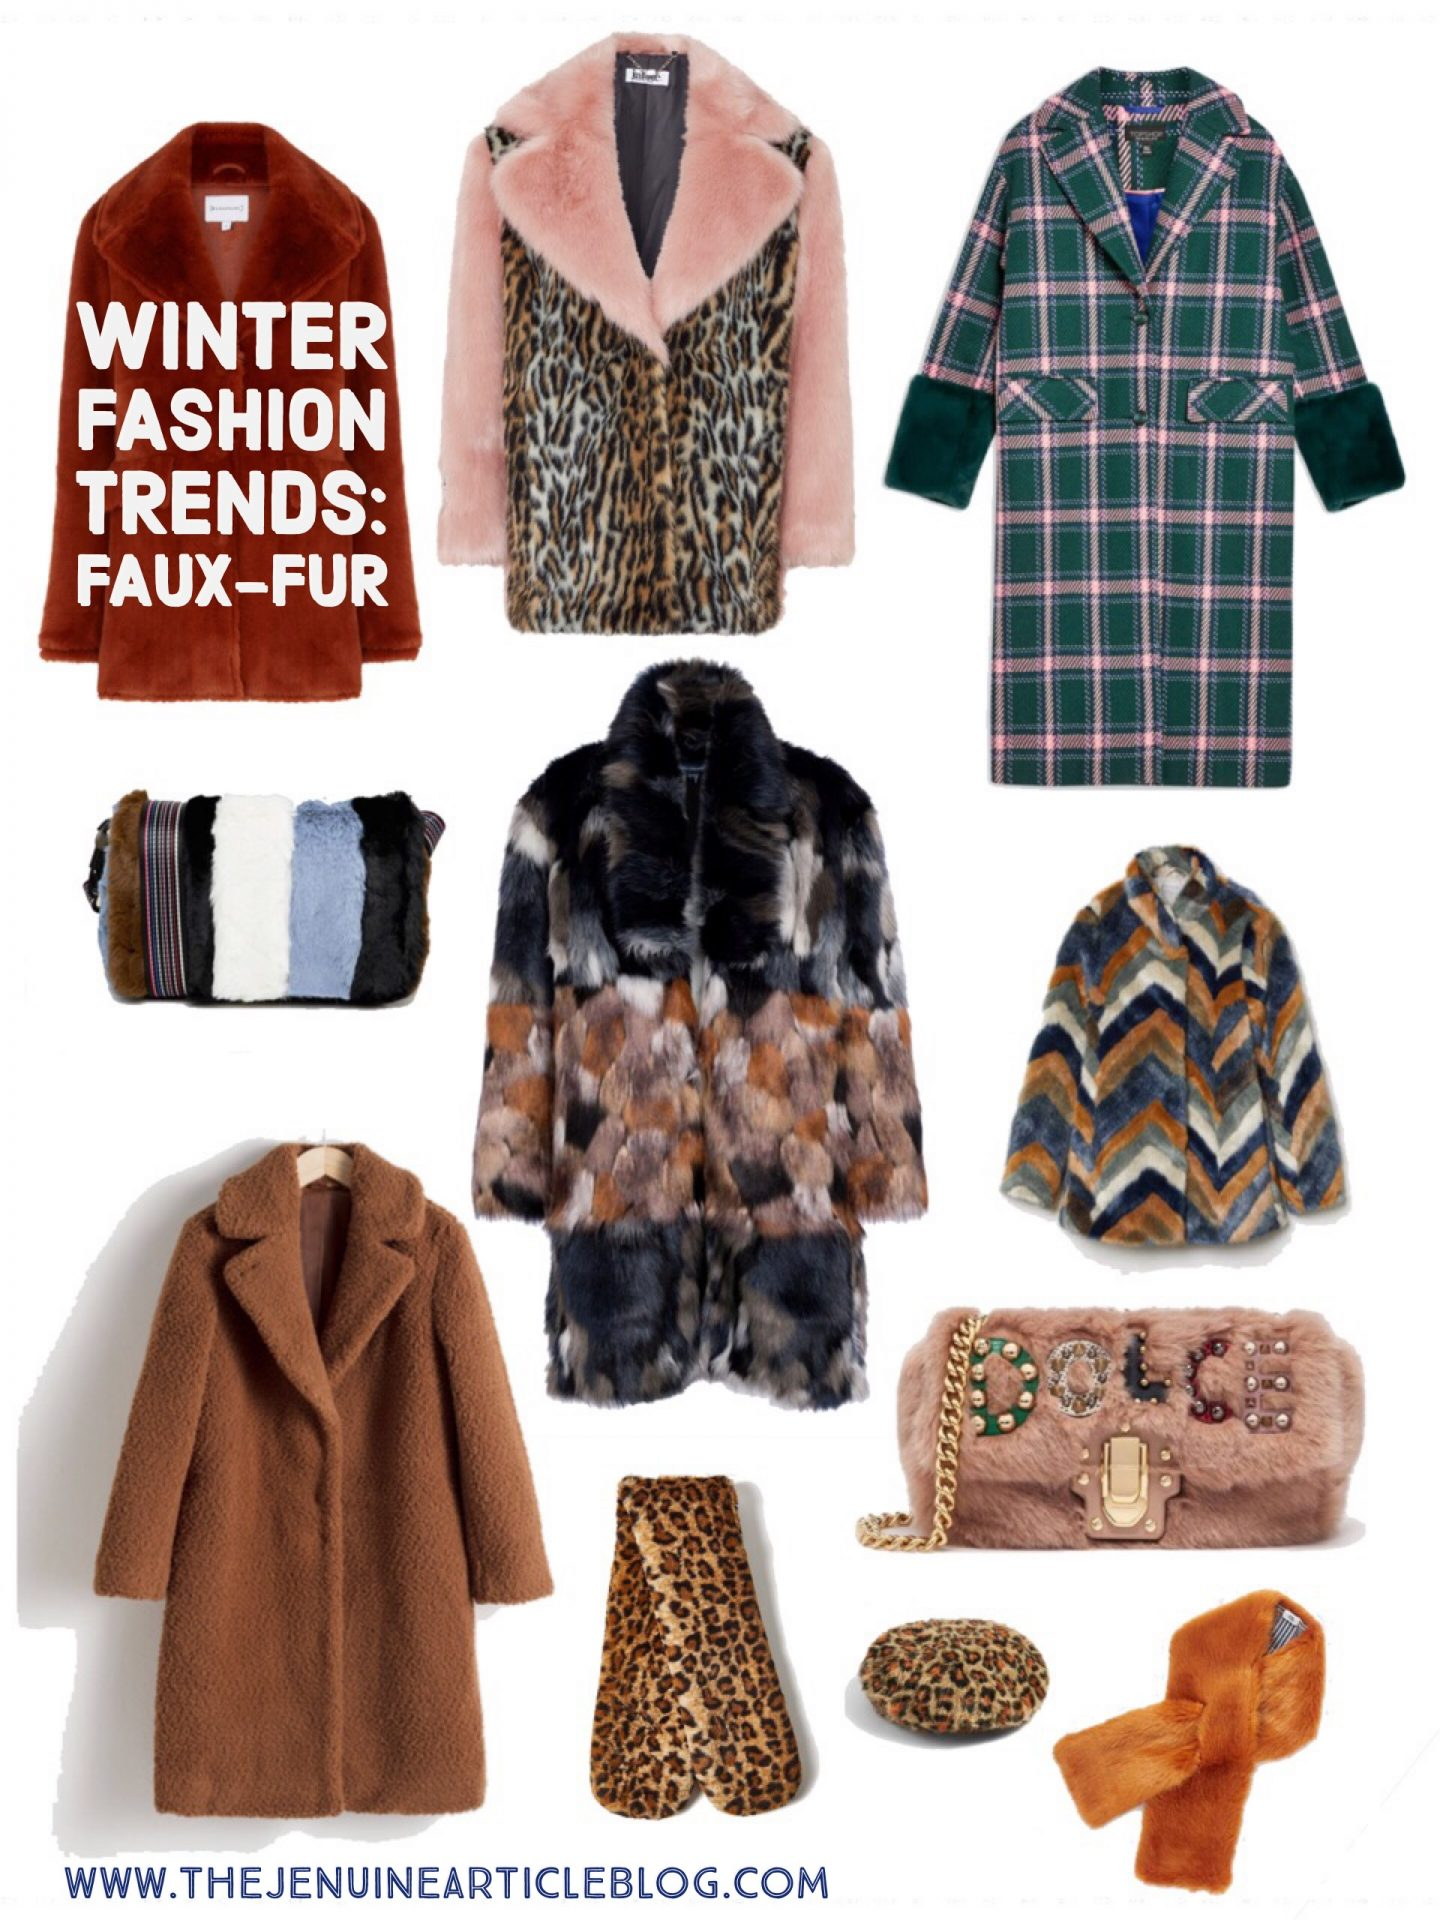 A collection of highly fashionable faux-fur items